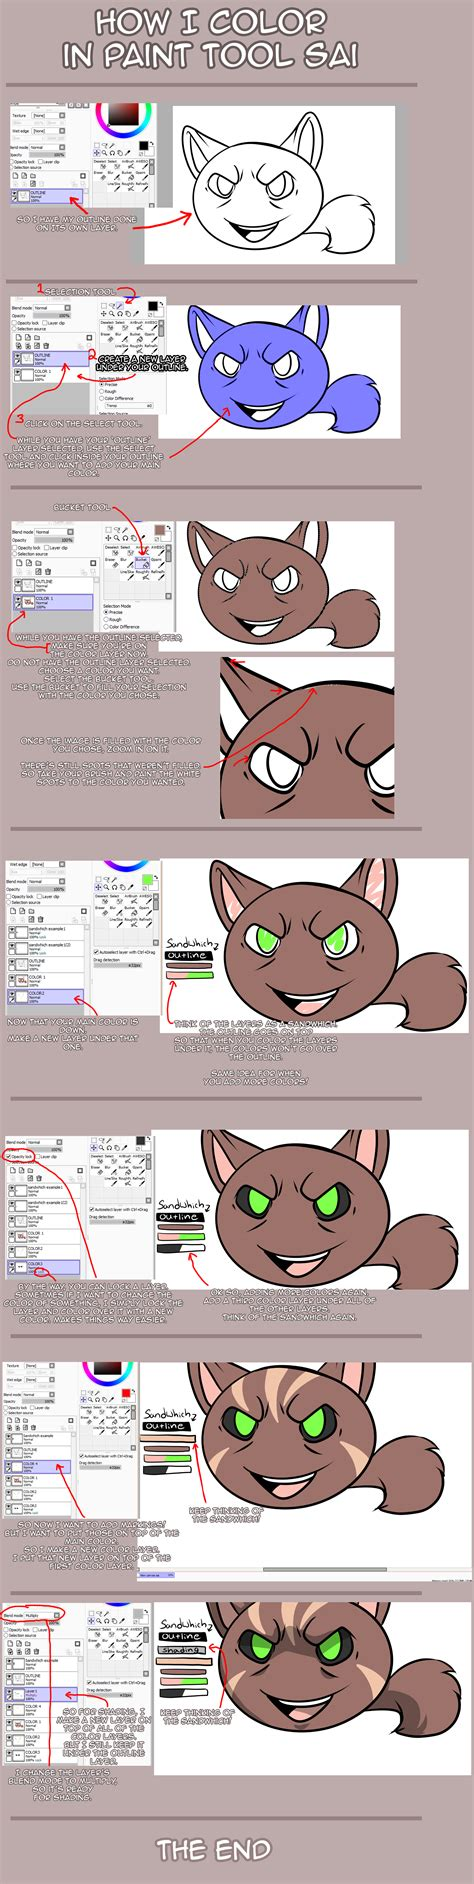 tutorial coloring di paint tool sai how i color in paint tool sai tutorial by xkoday on